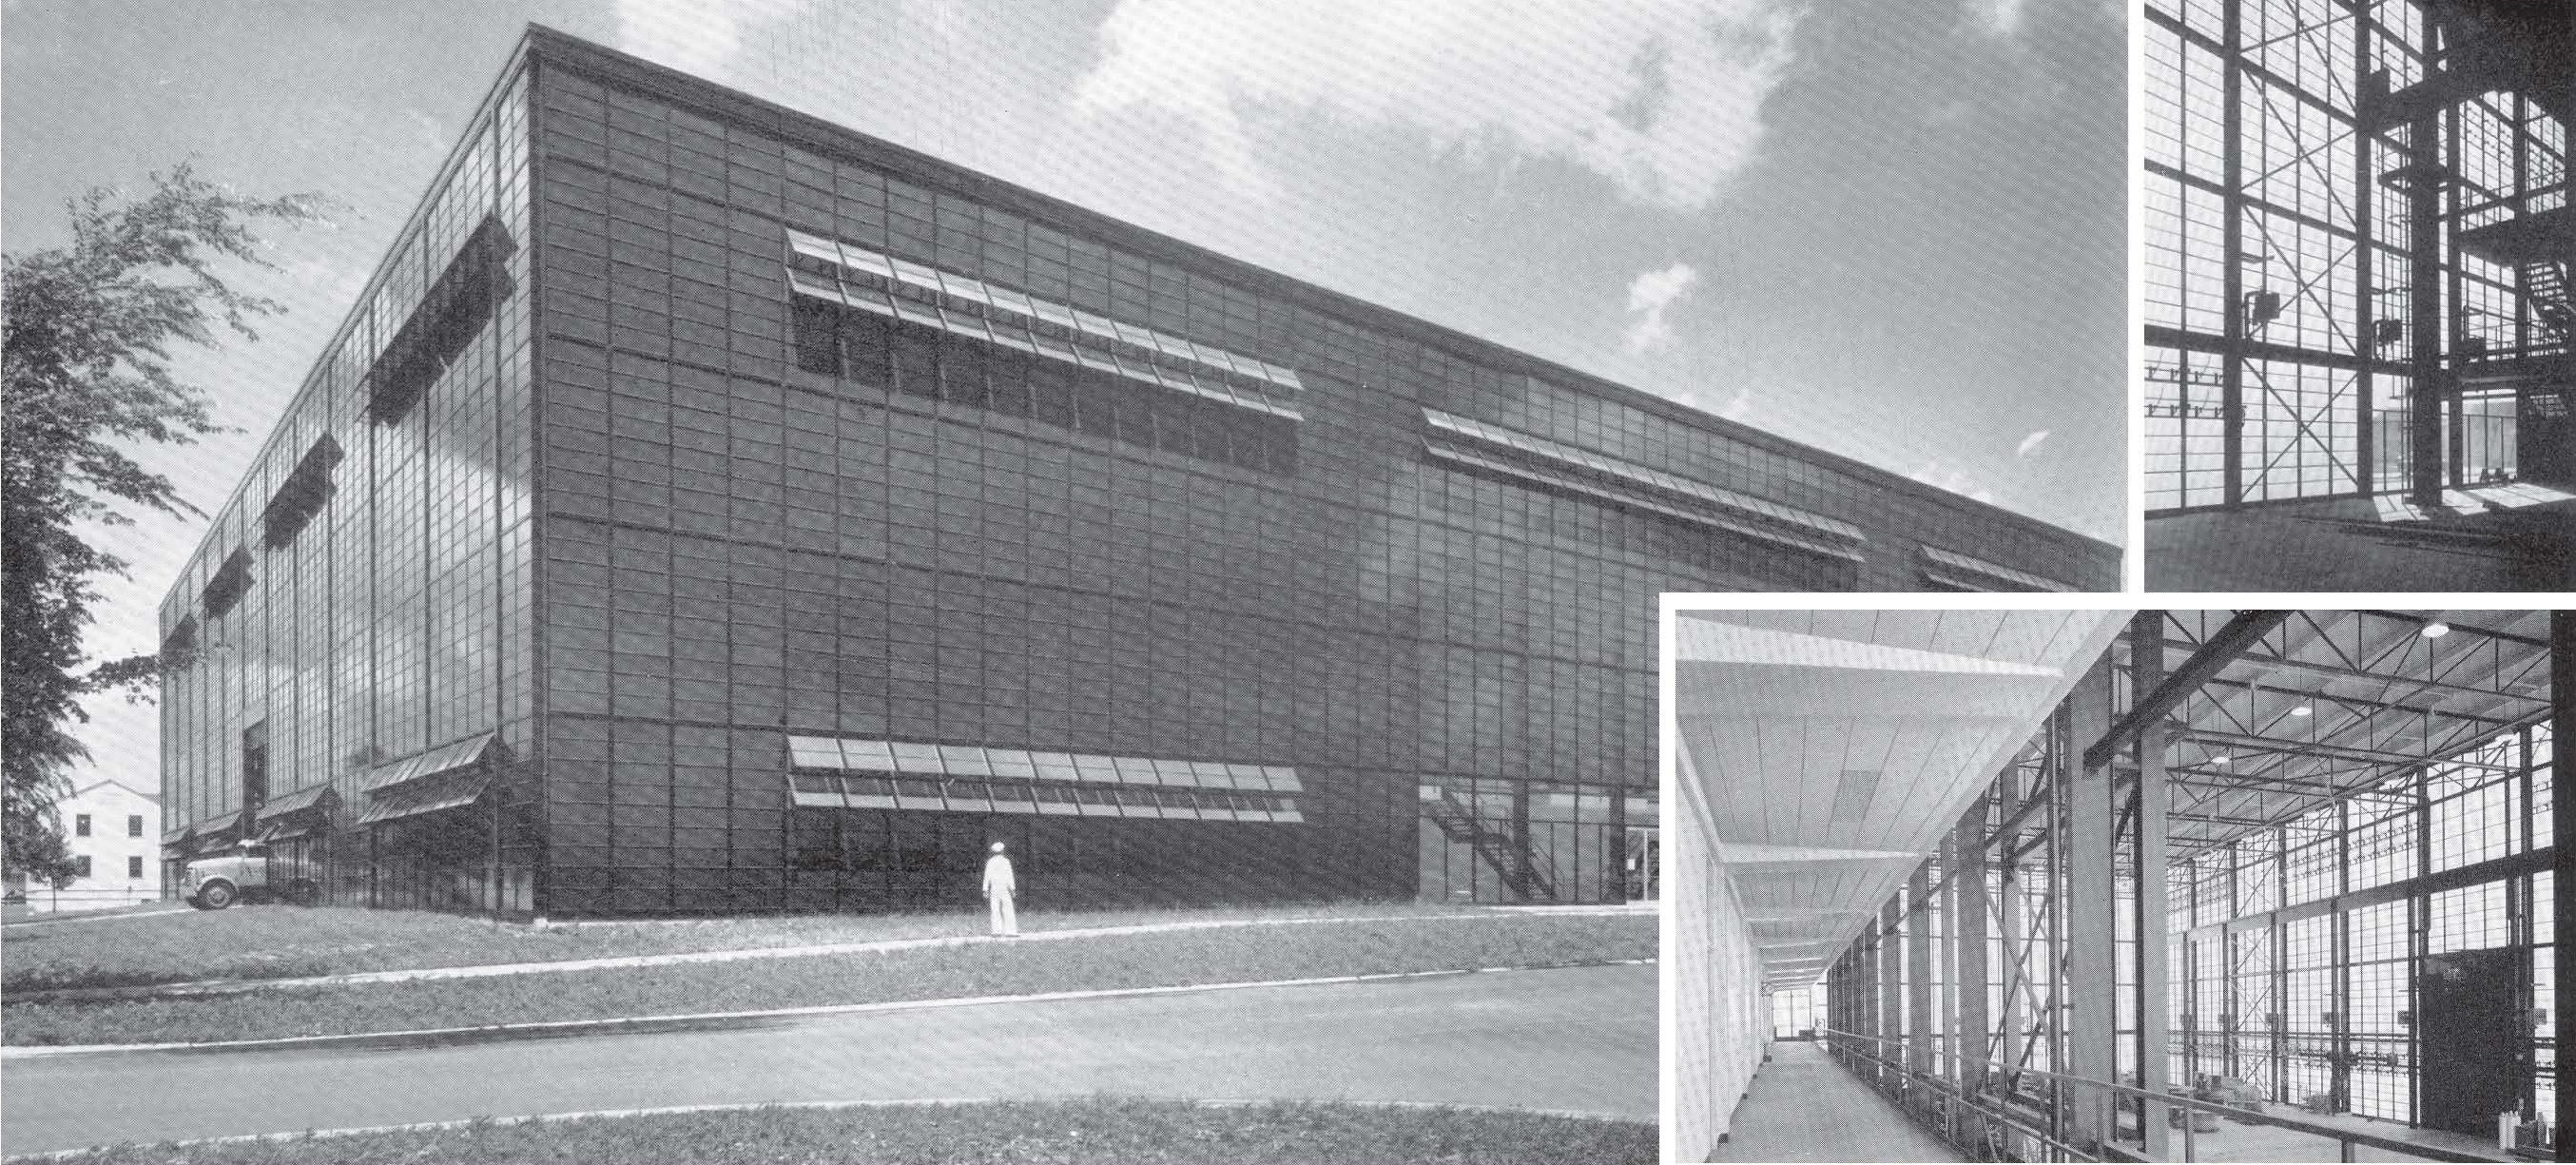 The early life of Building 521 on the Naval Station Great Lakes (Courtesy of Skidmore, Owings & Merrill)